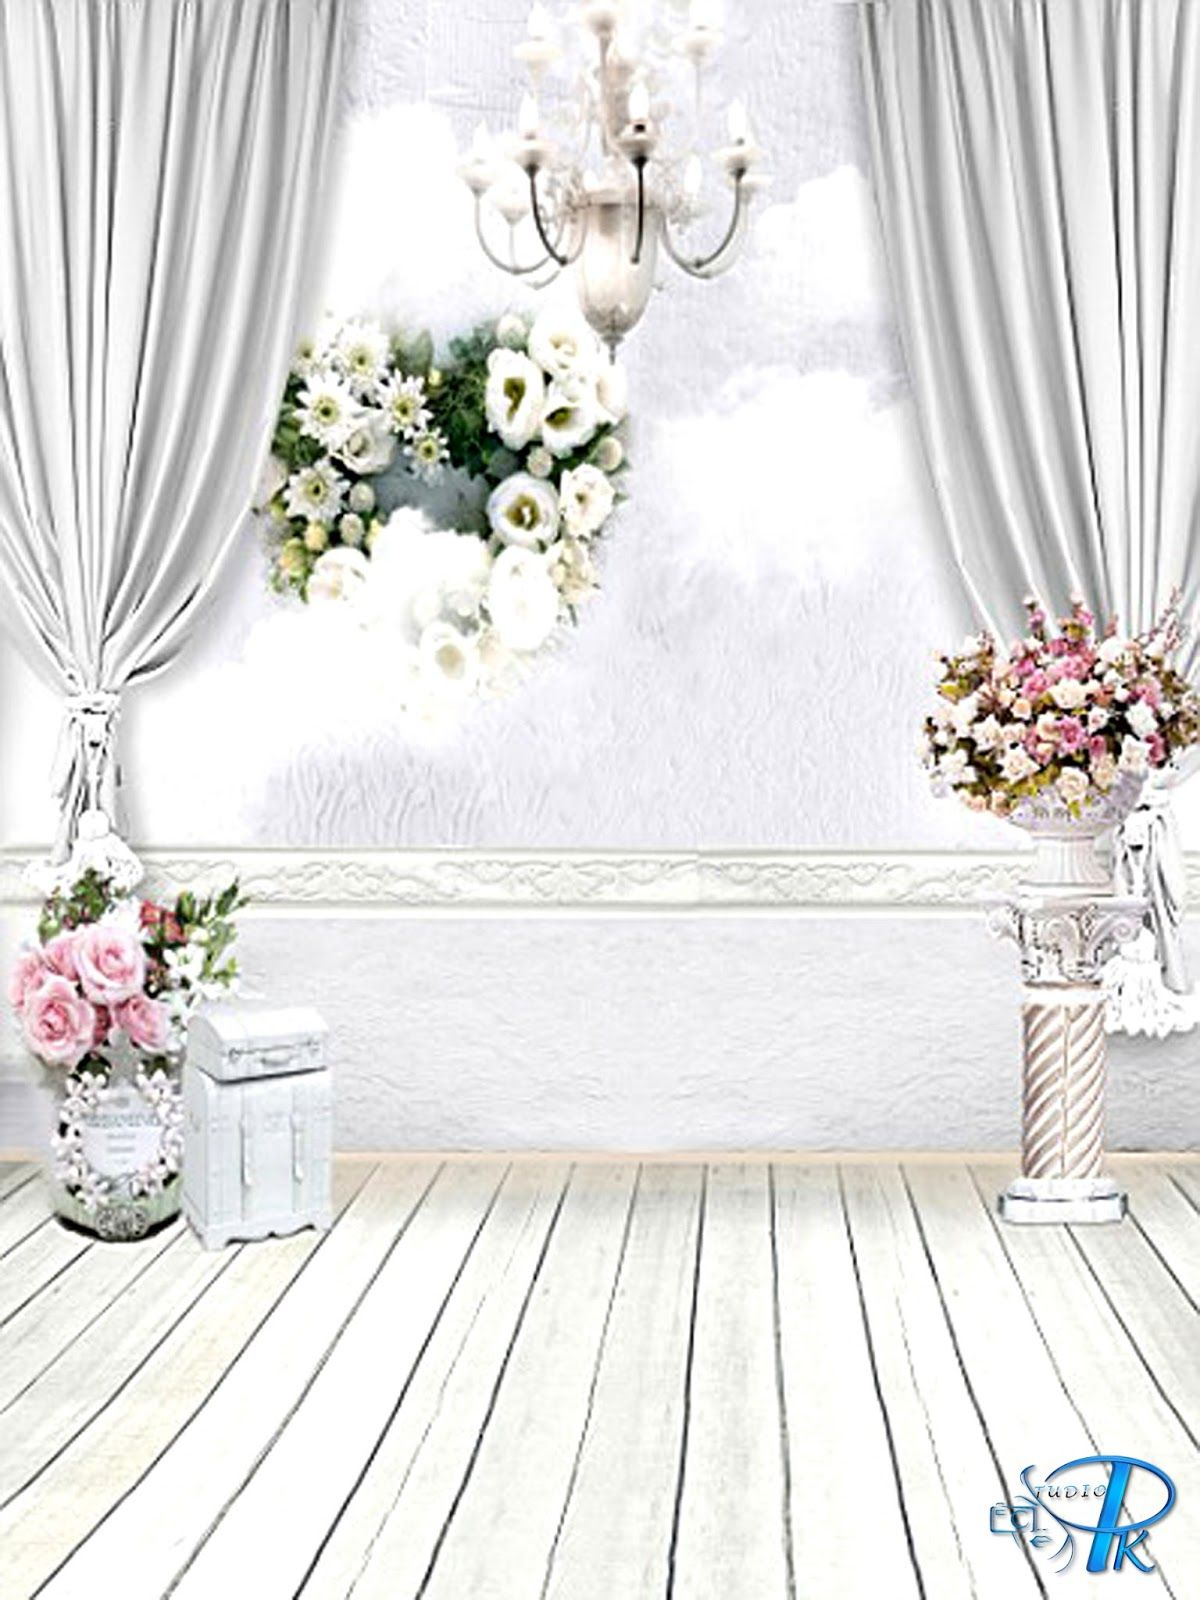 Floral Wedding Background Hd